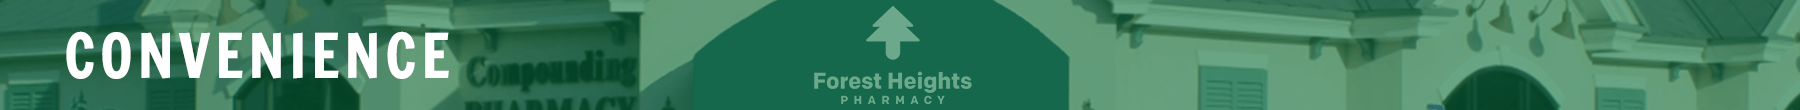 Convenience Program| Pharmacy | Gifts | Forest Heights Pharmacy Statesboro